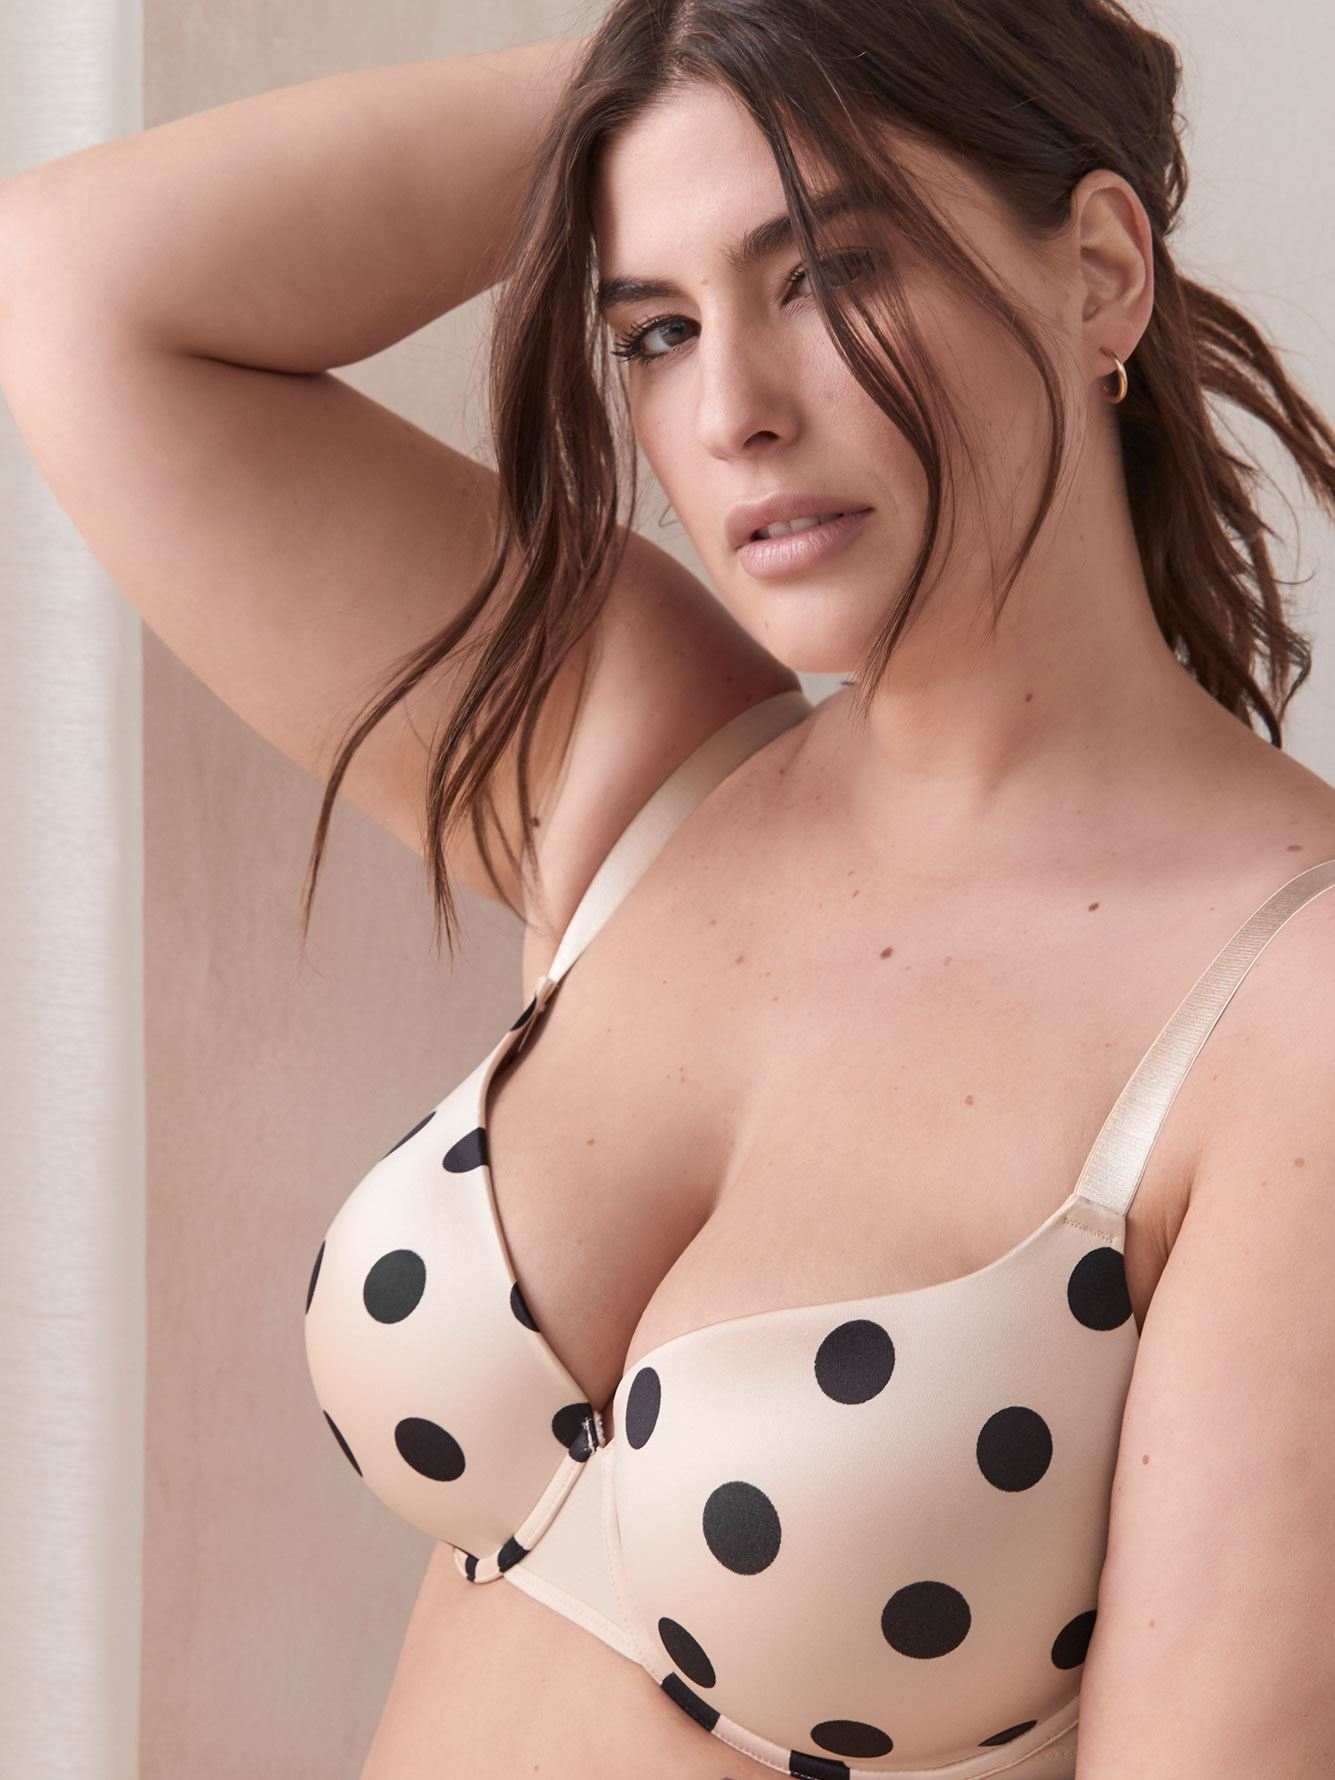 Polka Dot T-Shirt Bra, G & H Cups - Ashley Graham